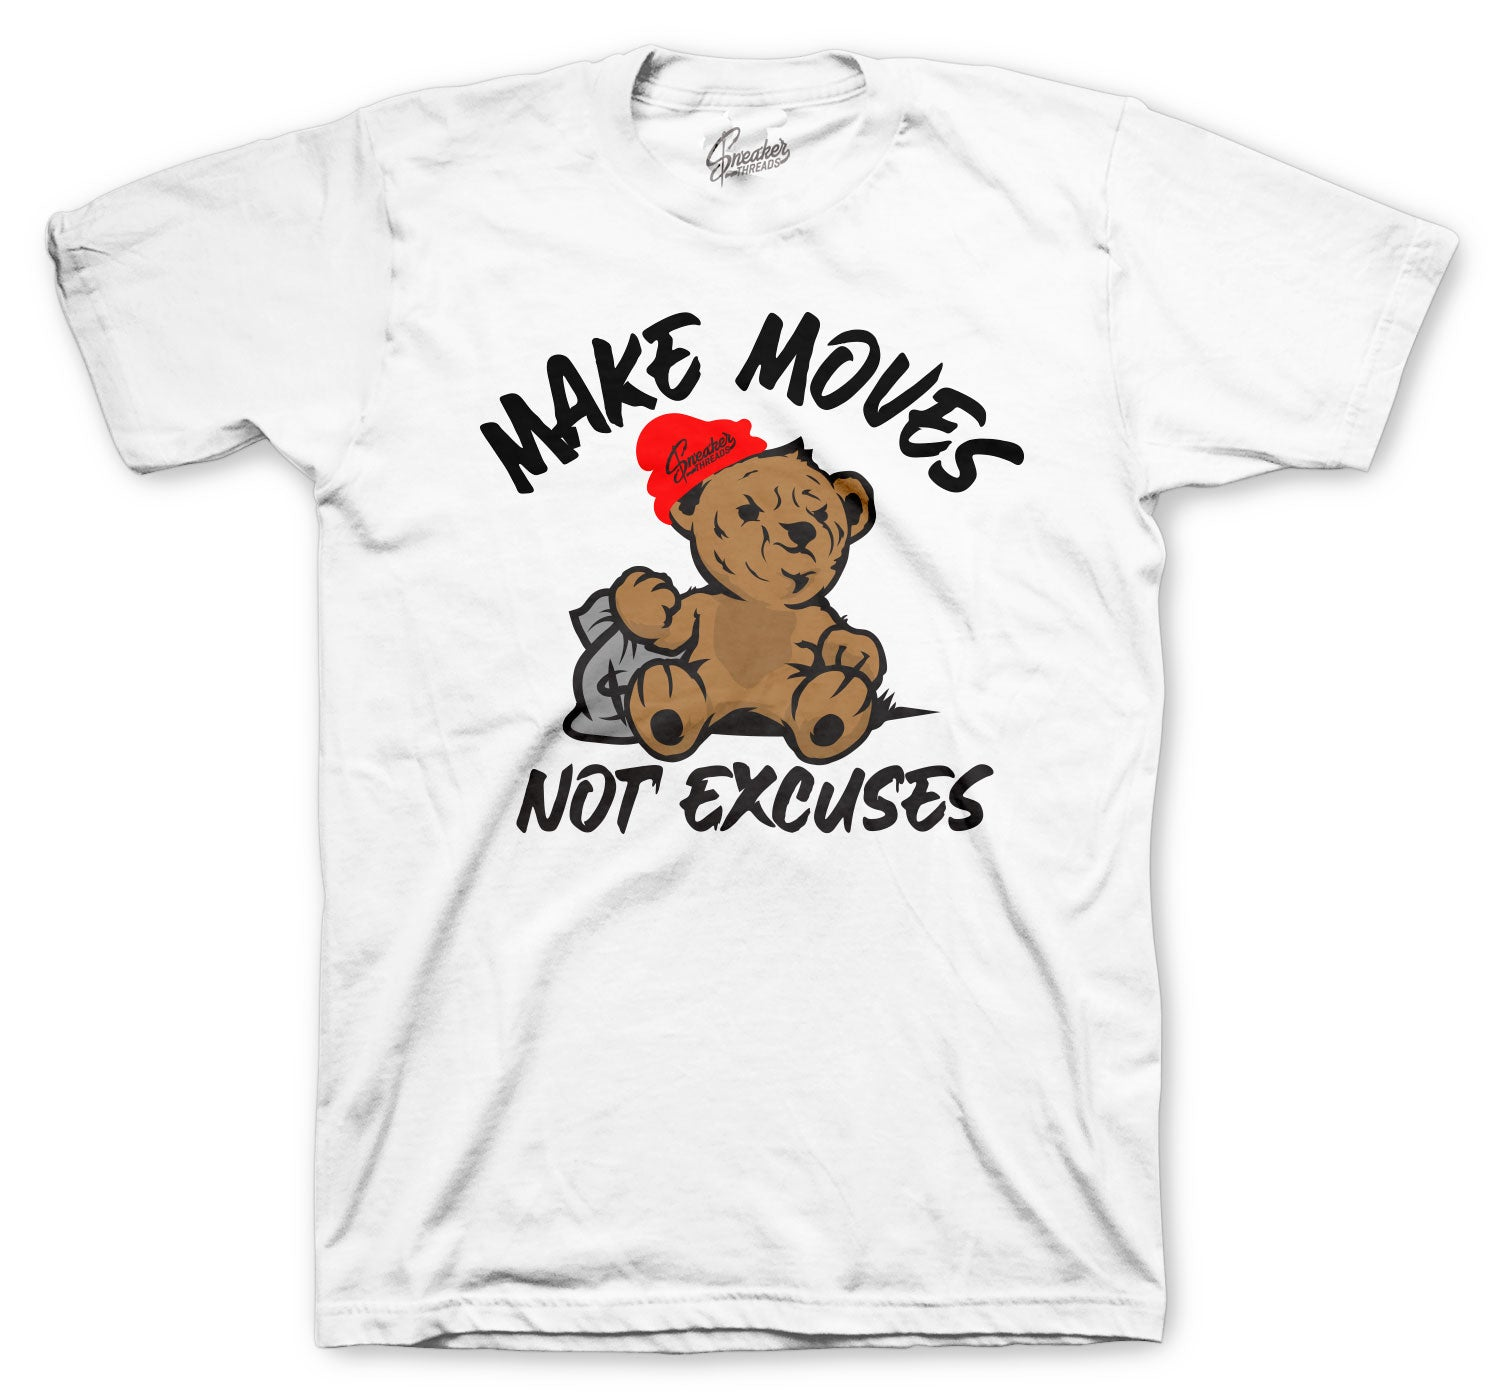 Jordan 13 Reverse Got Game Money Bear Shirt